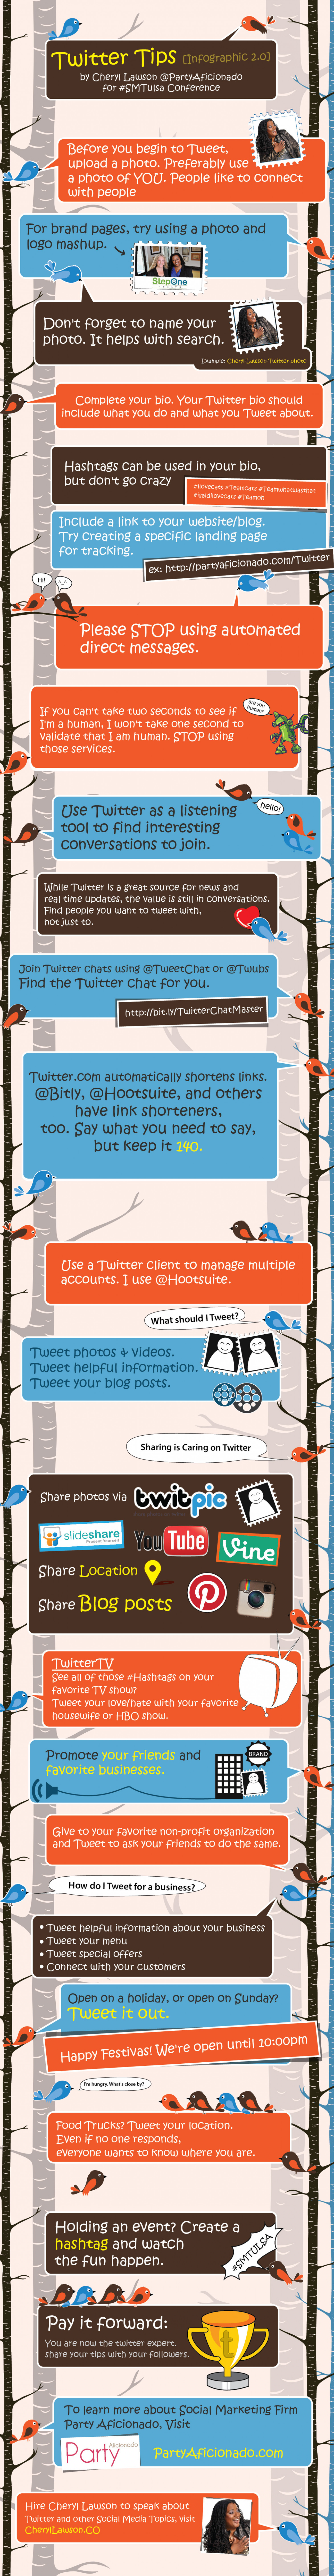 How to use Twitter Infographic 2.0 Infographic